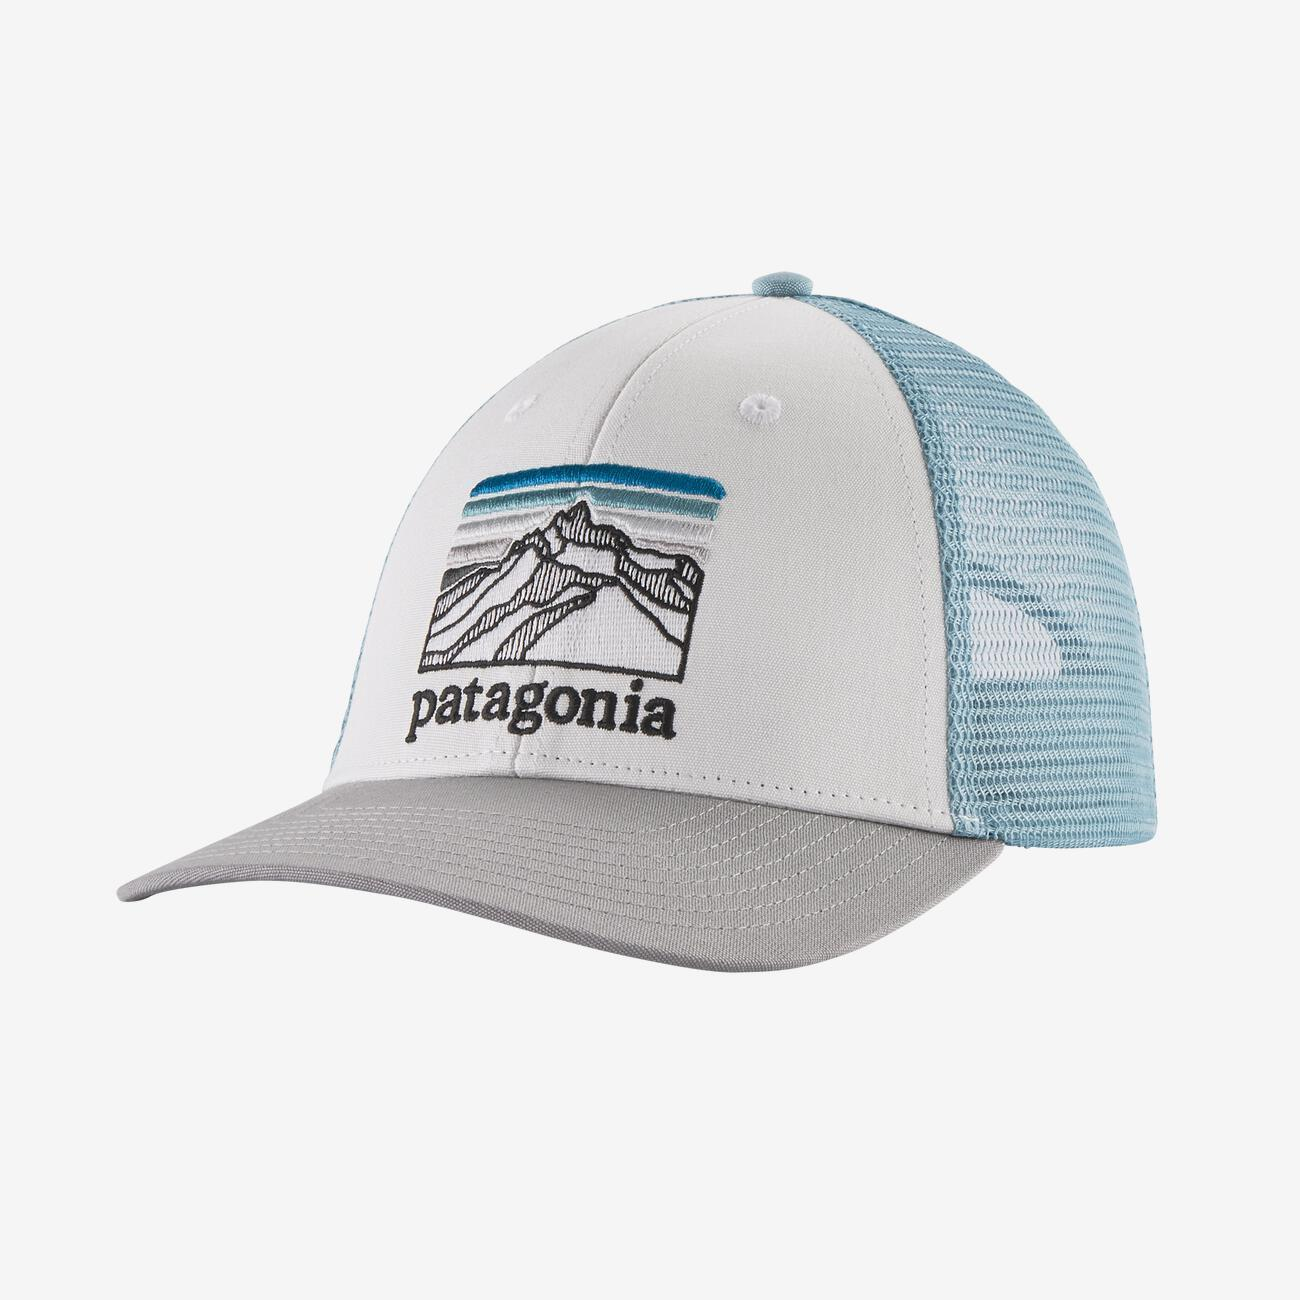 PATAGONIA Men's Hats WHITE Patagonia P-6 Logo LoPro Trucker Hat || David's Clothing 38285WHI